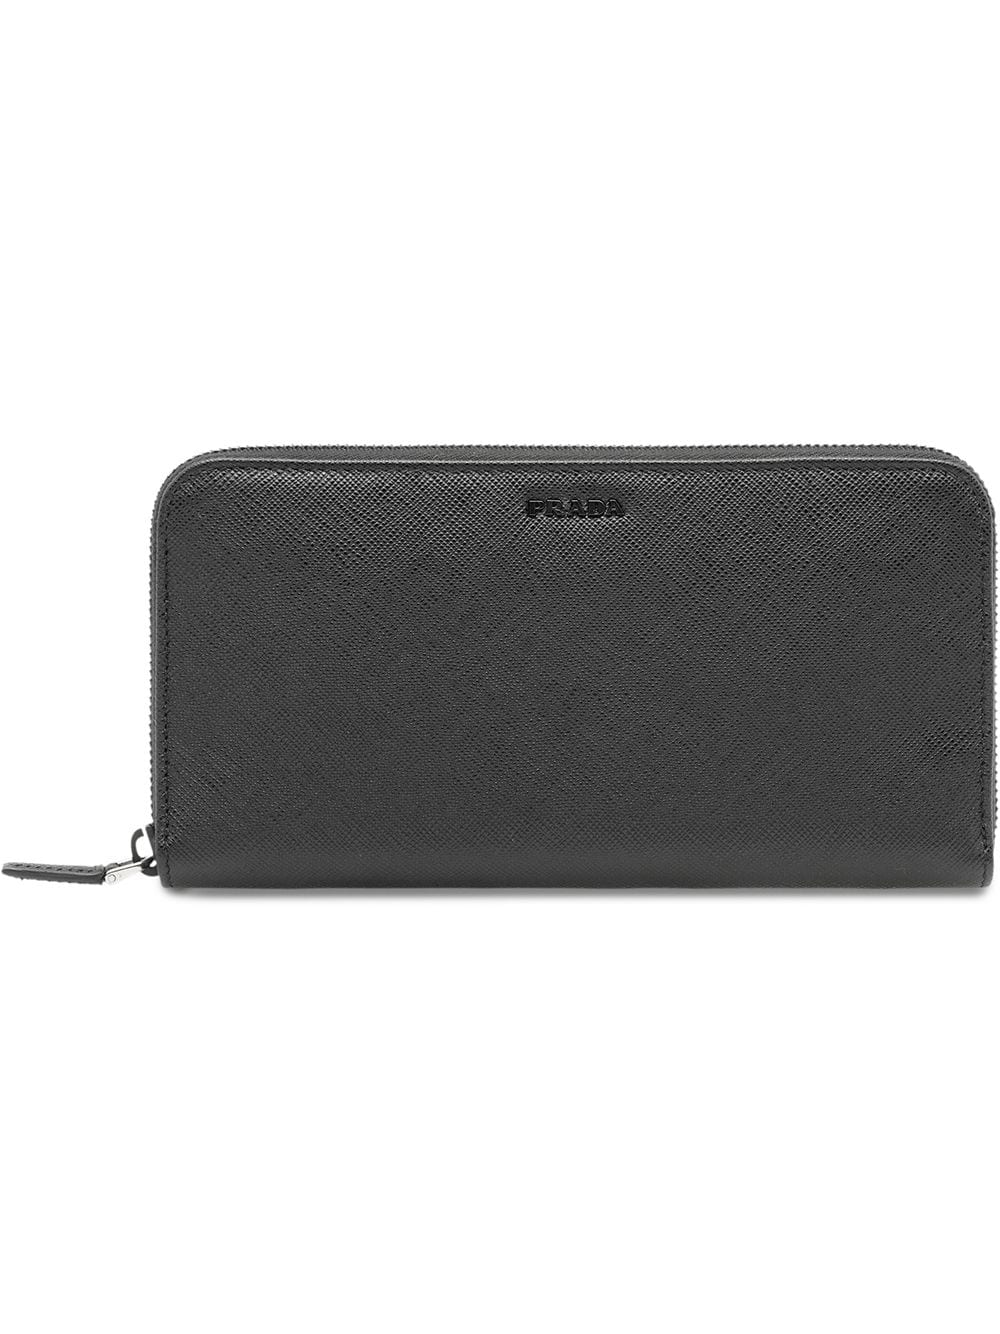 Prada saffiano leather wallet - Black von Prada